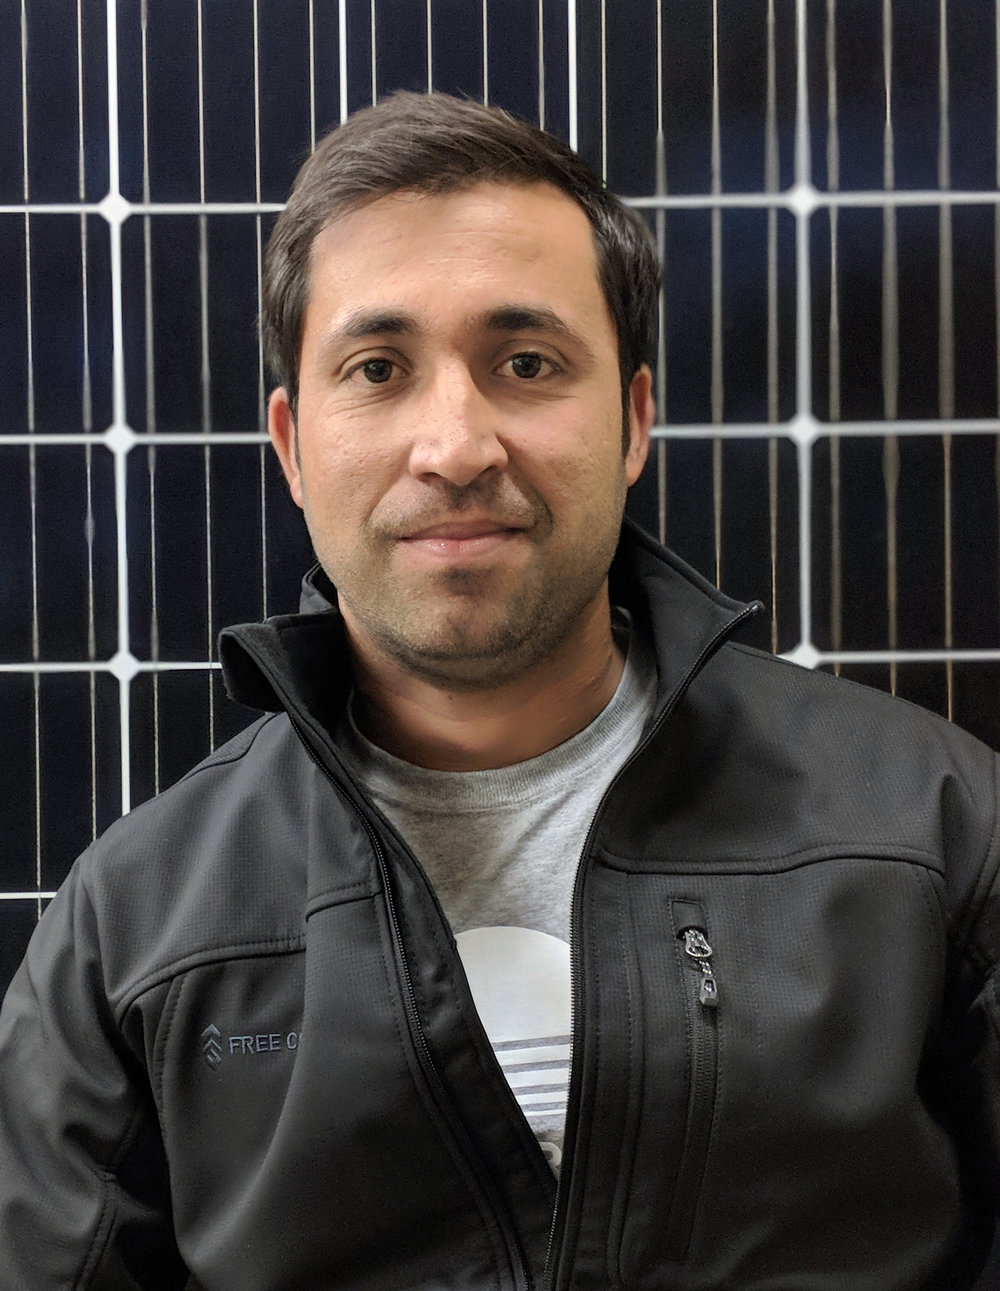 Waheed Asmati, Construction Engineer & Solar Installer